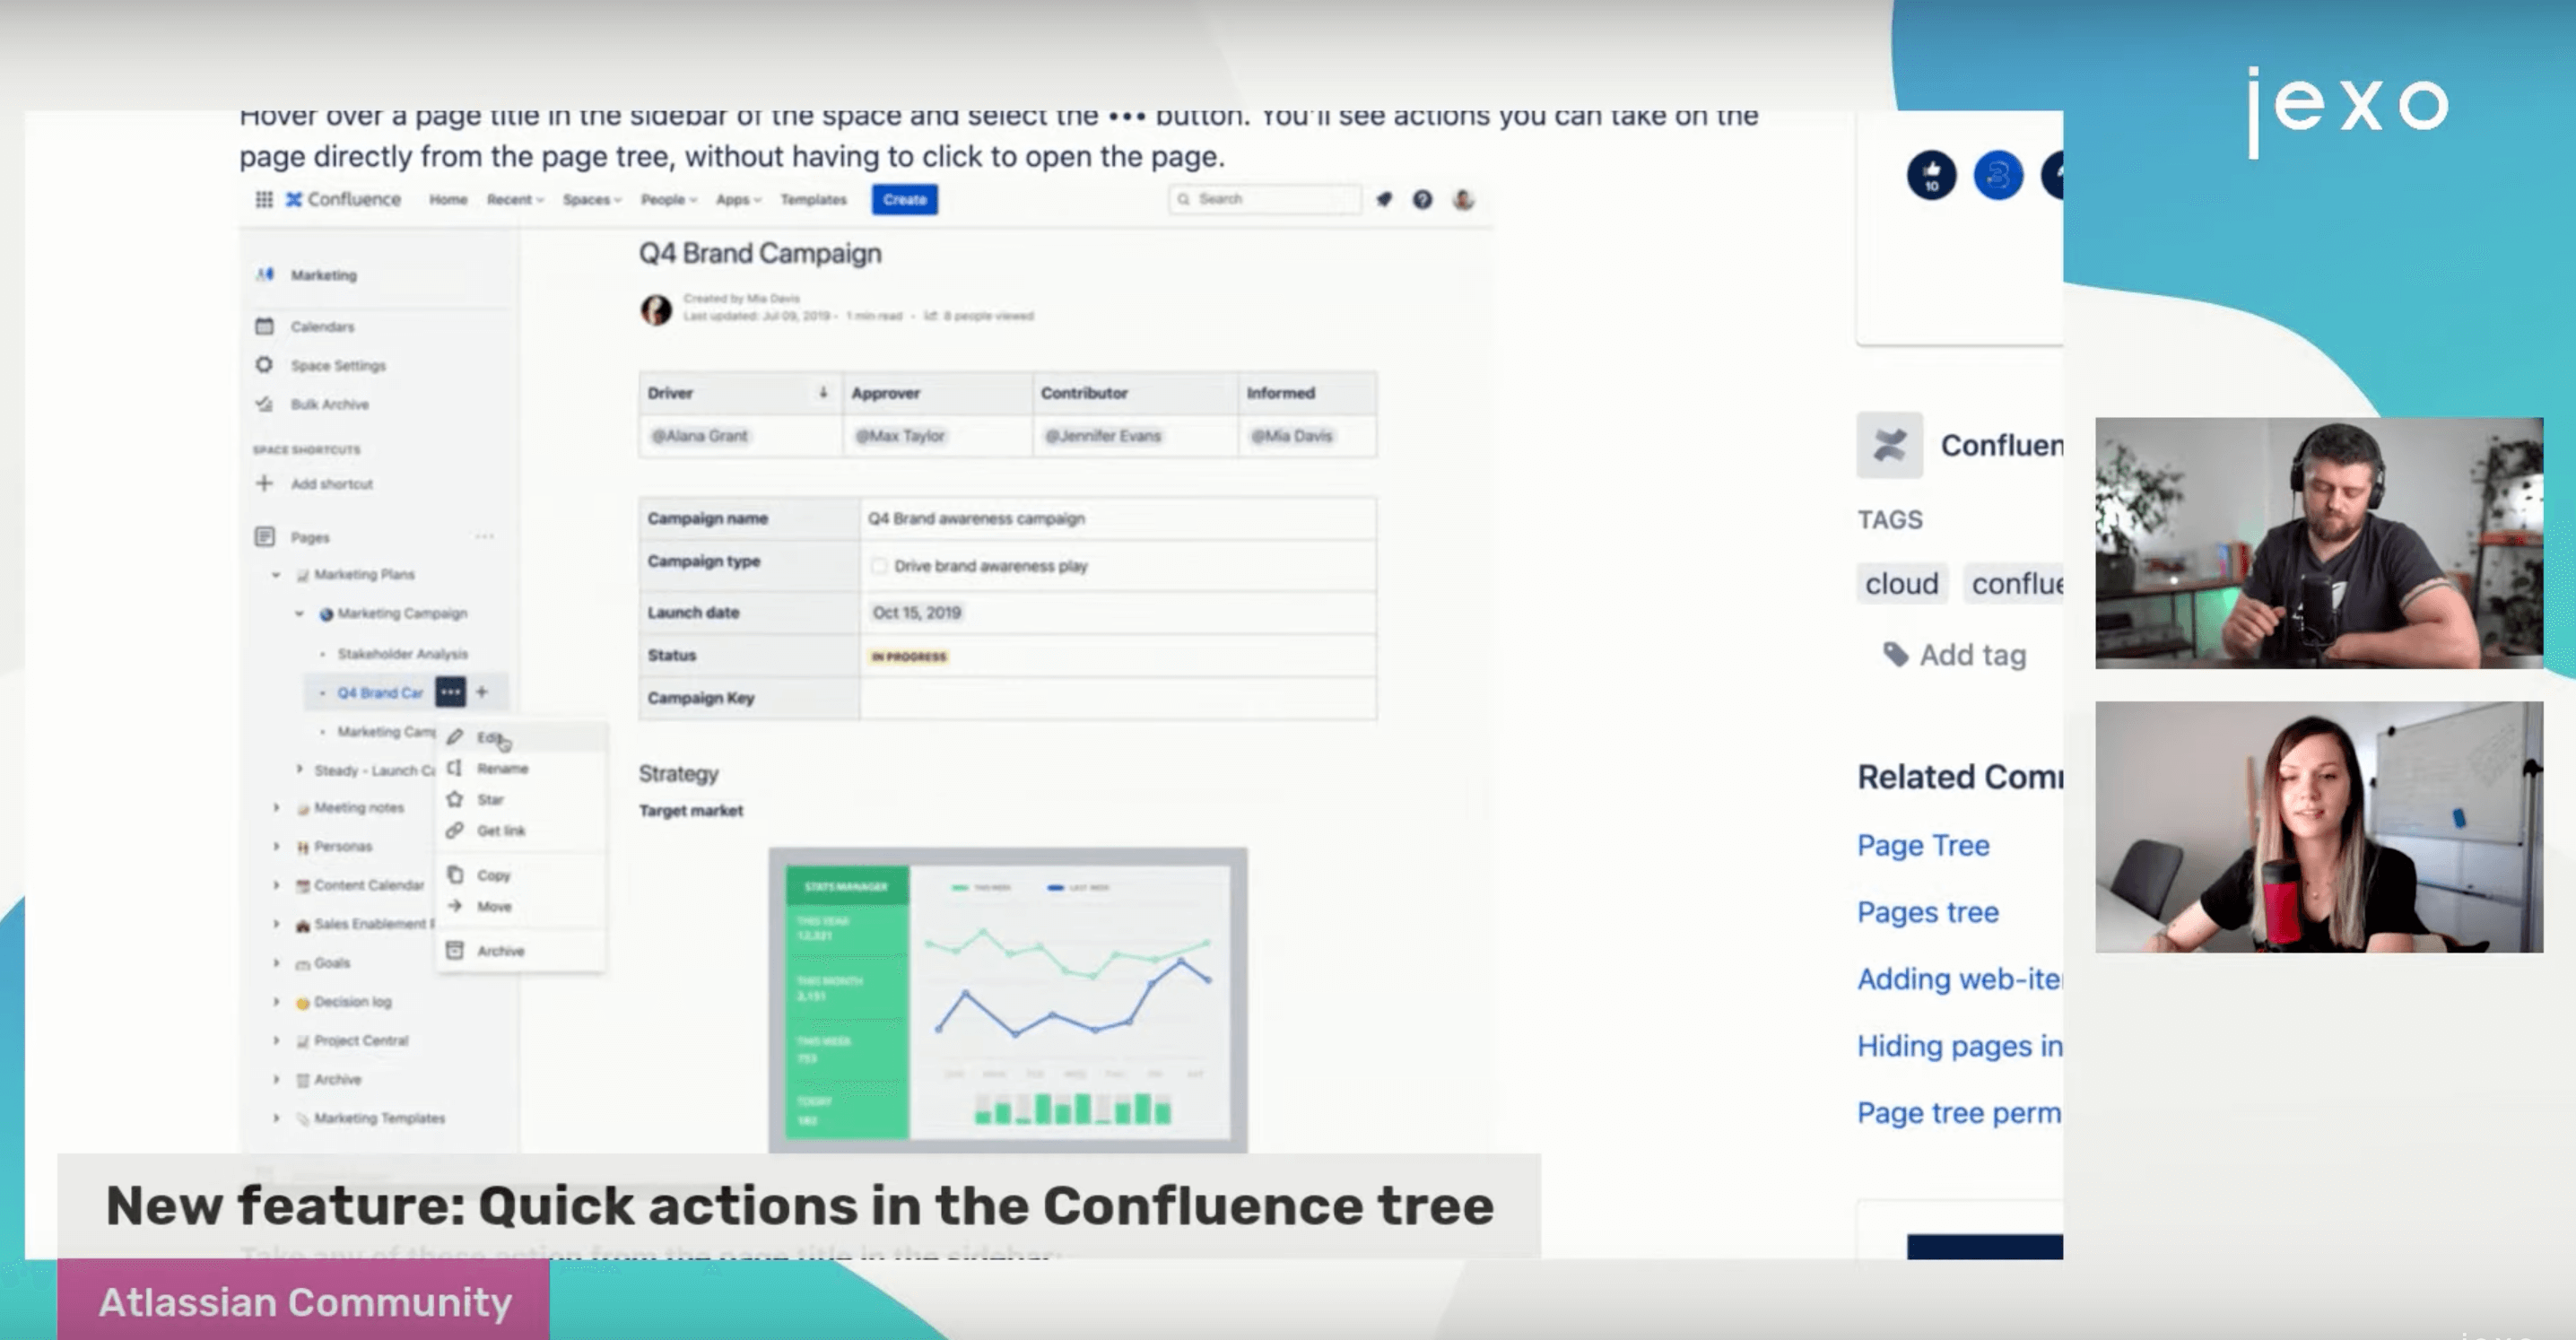 Atlassian News: Quick actions in your Confluence tree